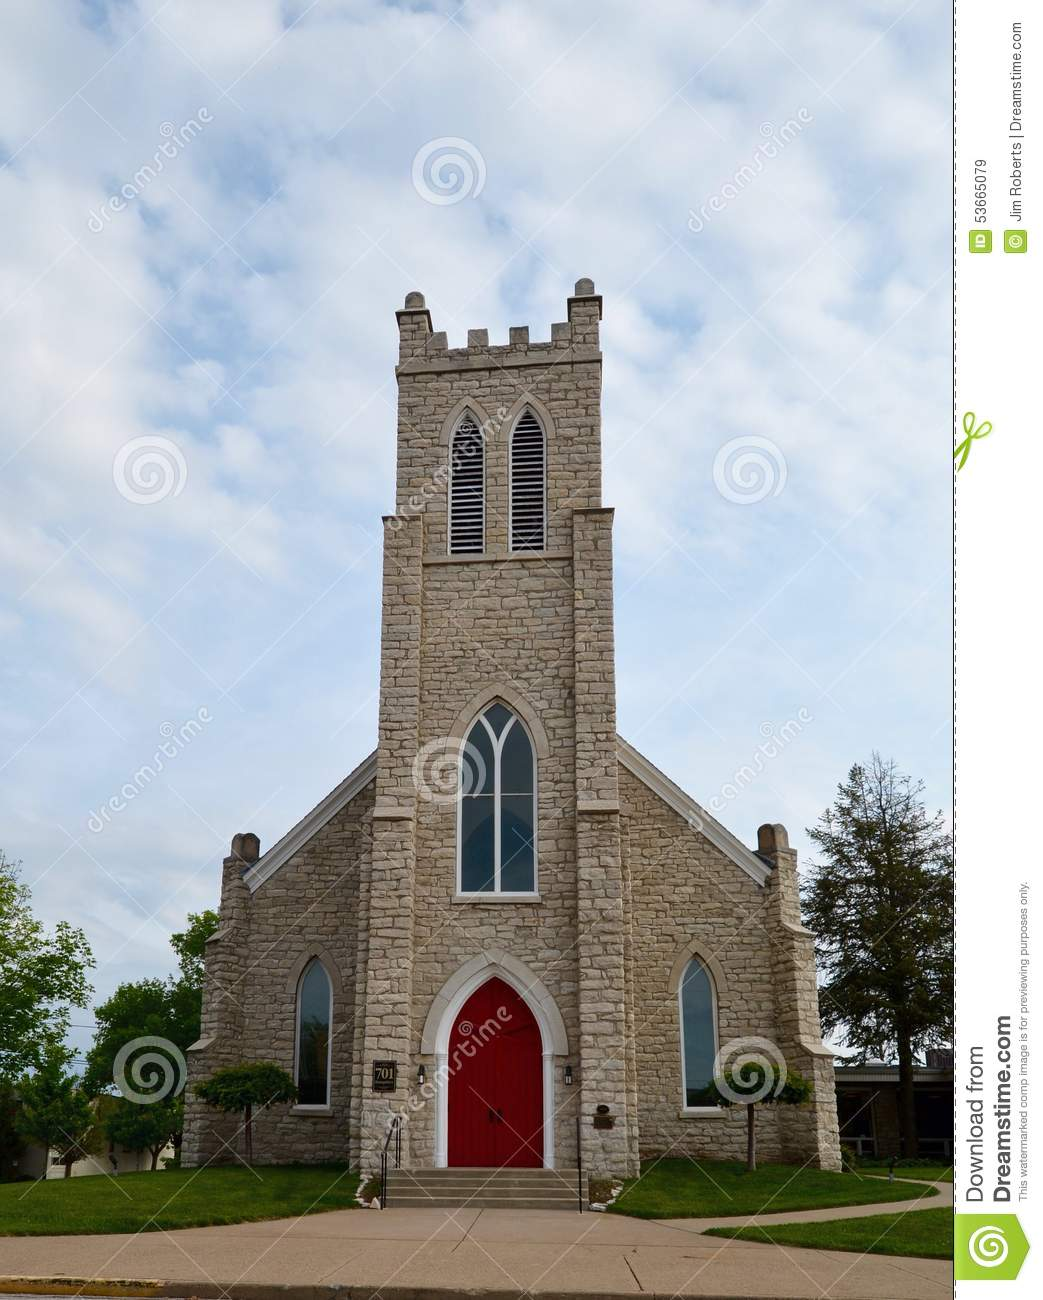 Red Door Church Editorial Stock Image Image Of Gothic 53665079